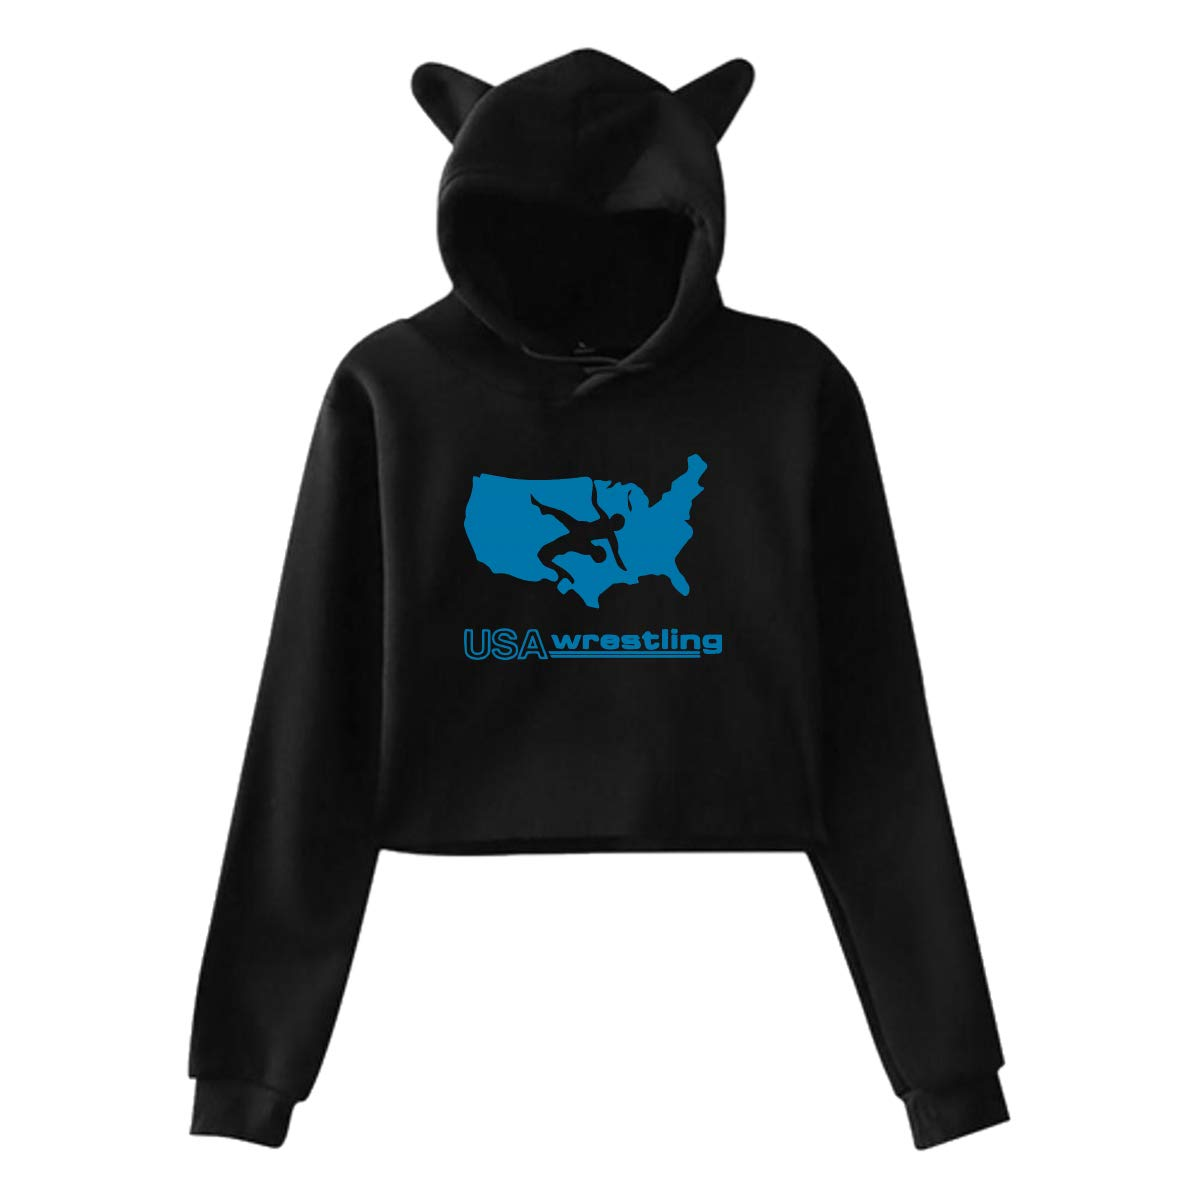 S-XXL Casual USA Wrestling Long Sleeve Tops Blouse Womens Cat Ear Crop Top Hoodie Sweater